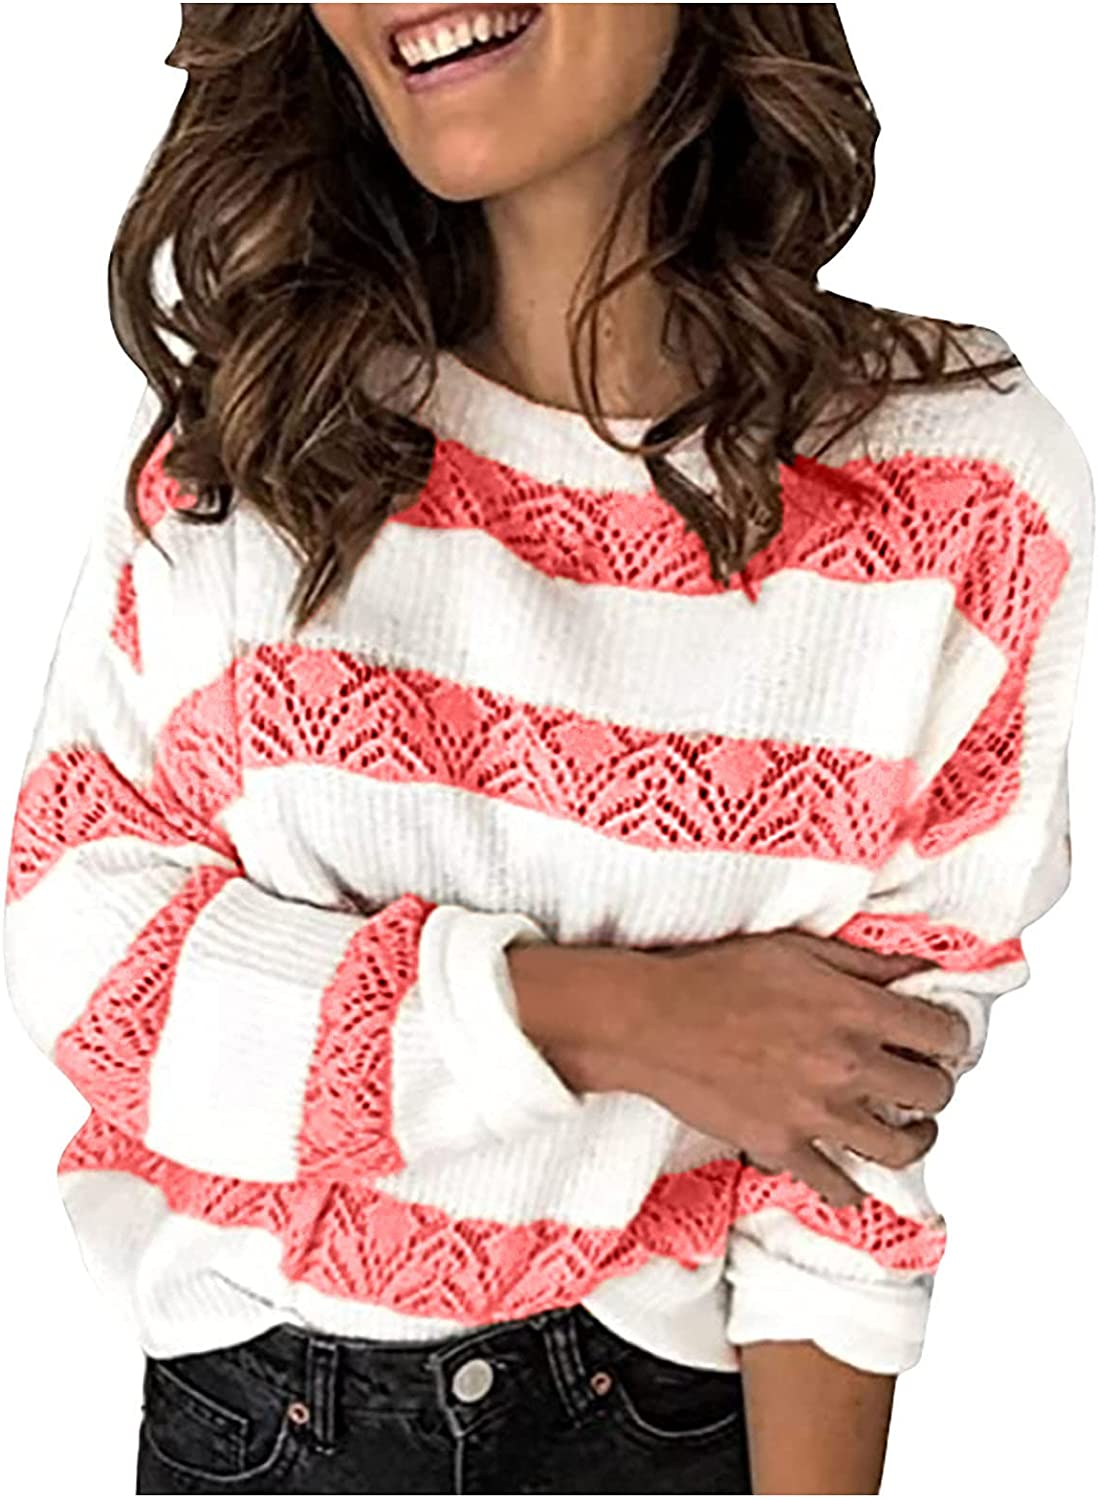 Women's Lace Crochet Sweater We OFFer Ultra-Cheap Deals at cheap prices Stripe Loose Splic Casual Pullover